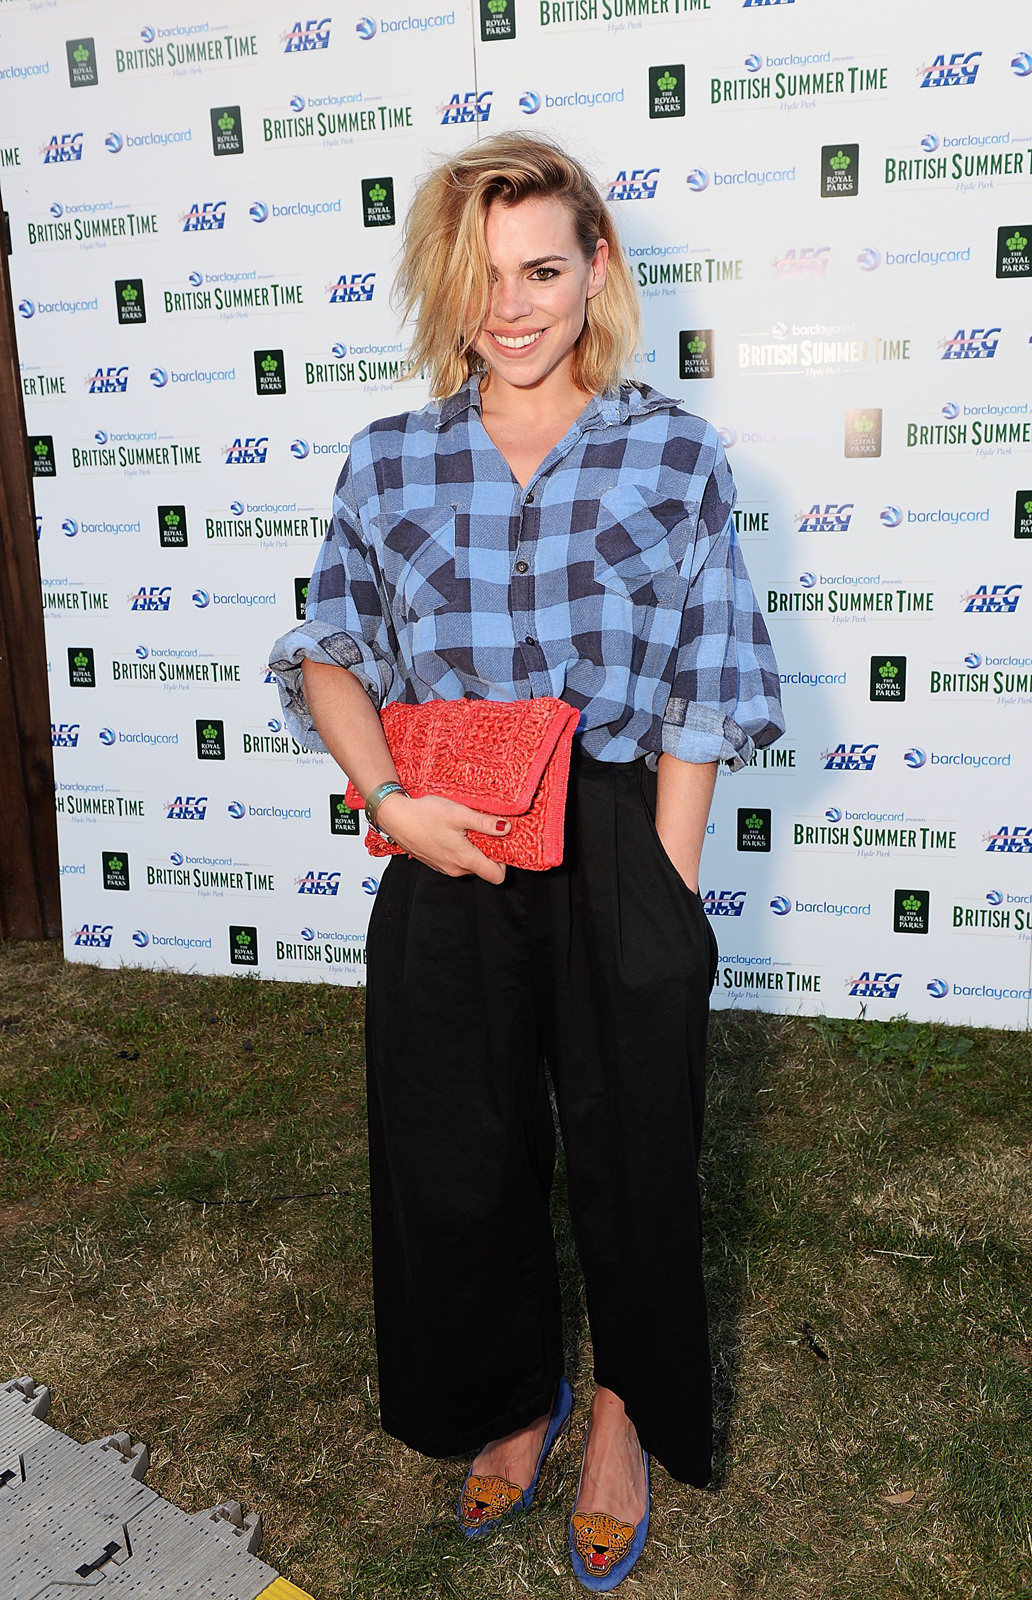 Billie Piper Photo Gallery